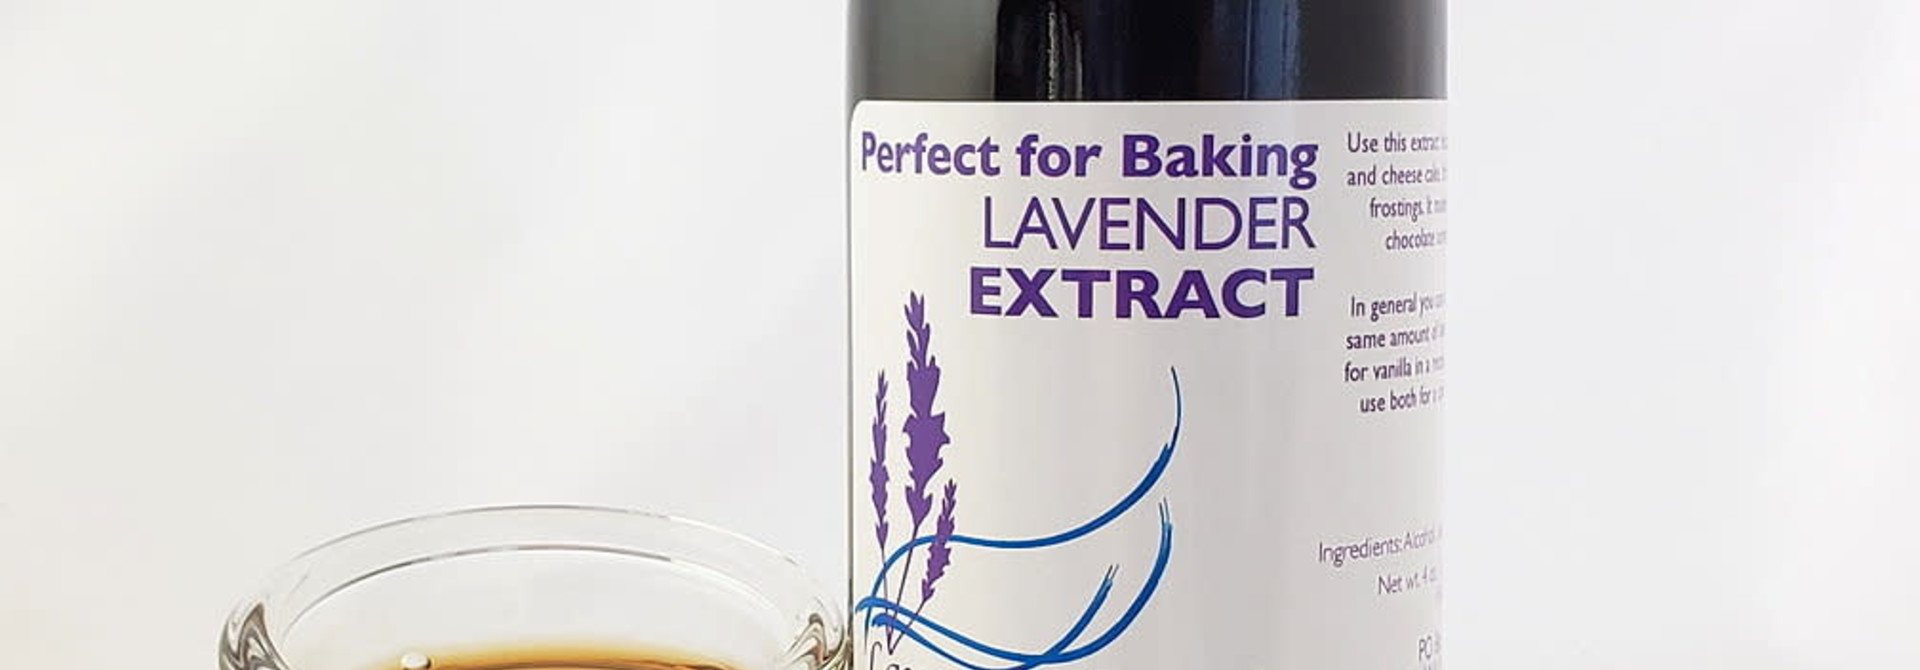 Lavender Baking Extract Large